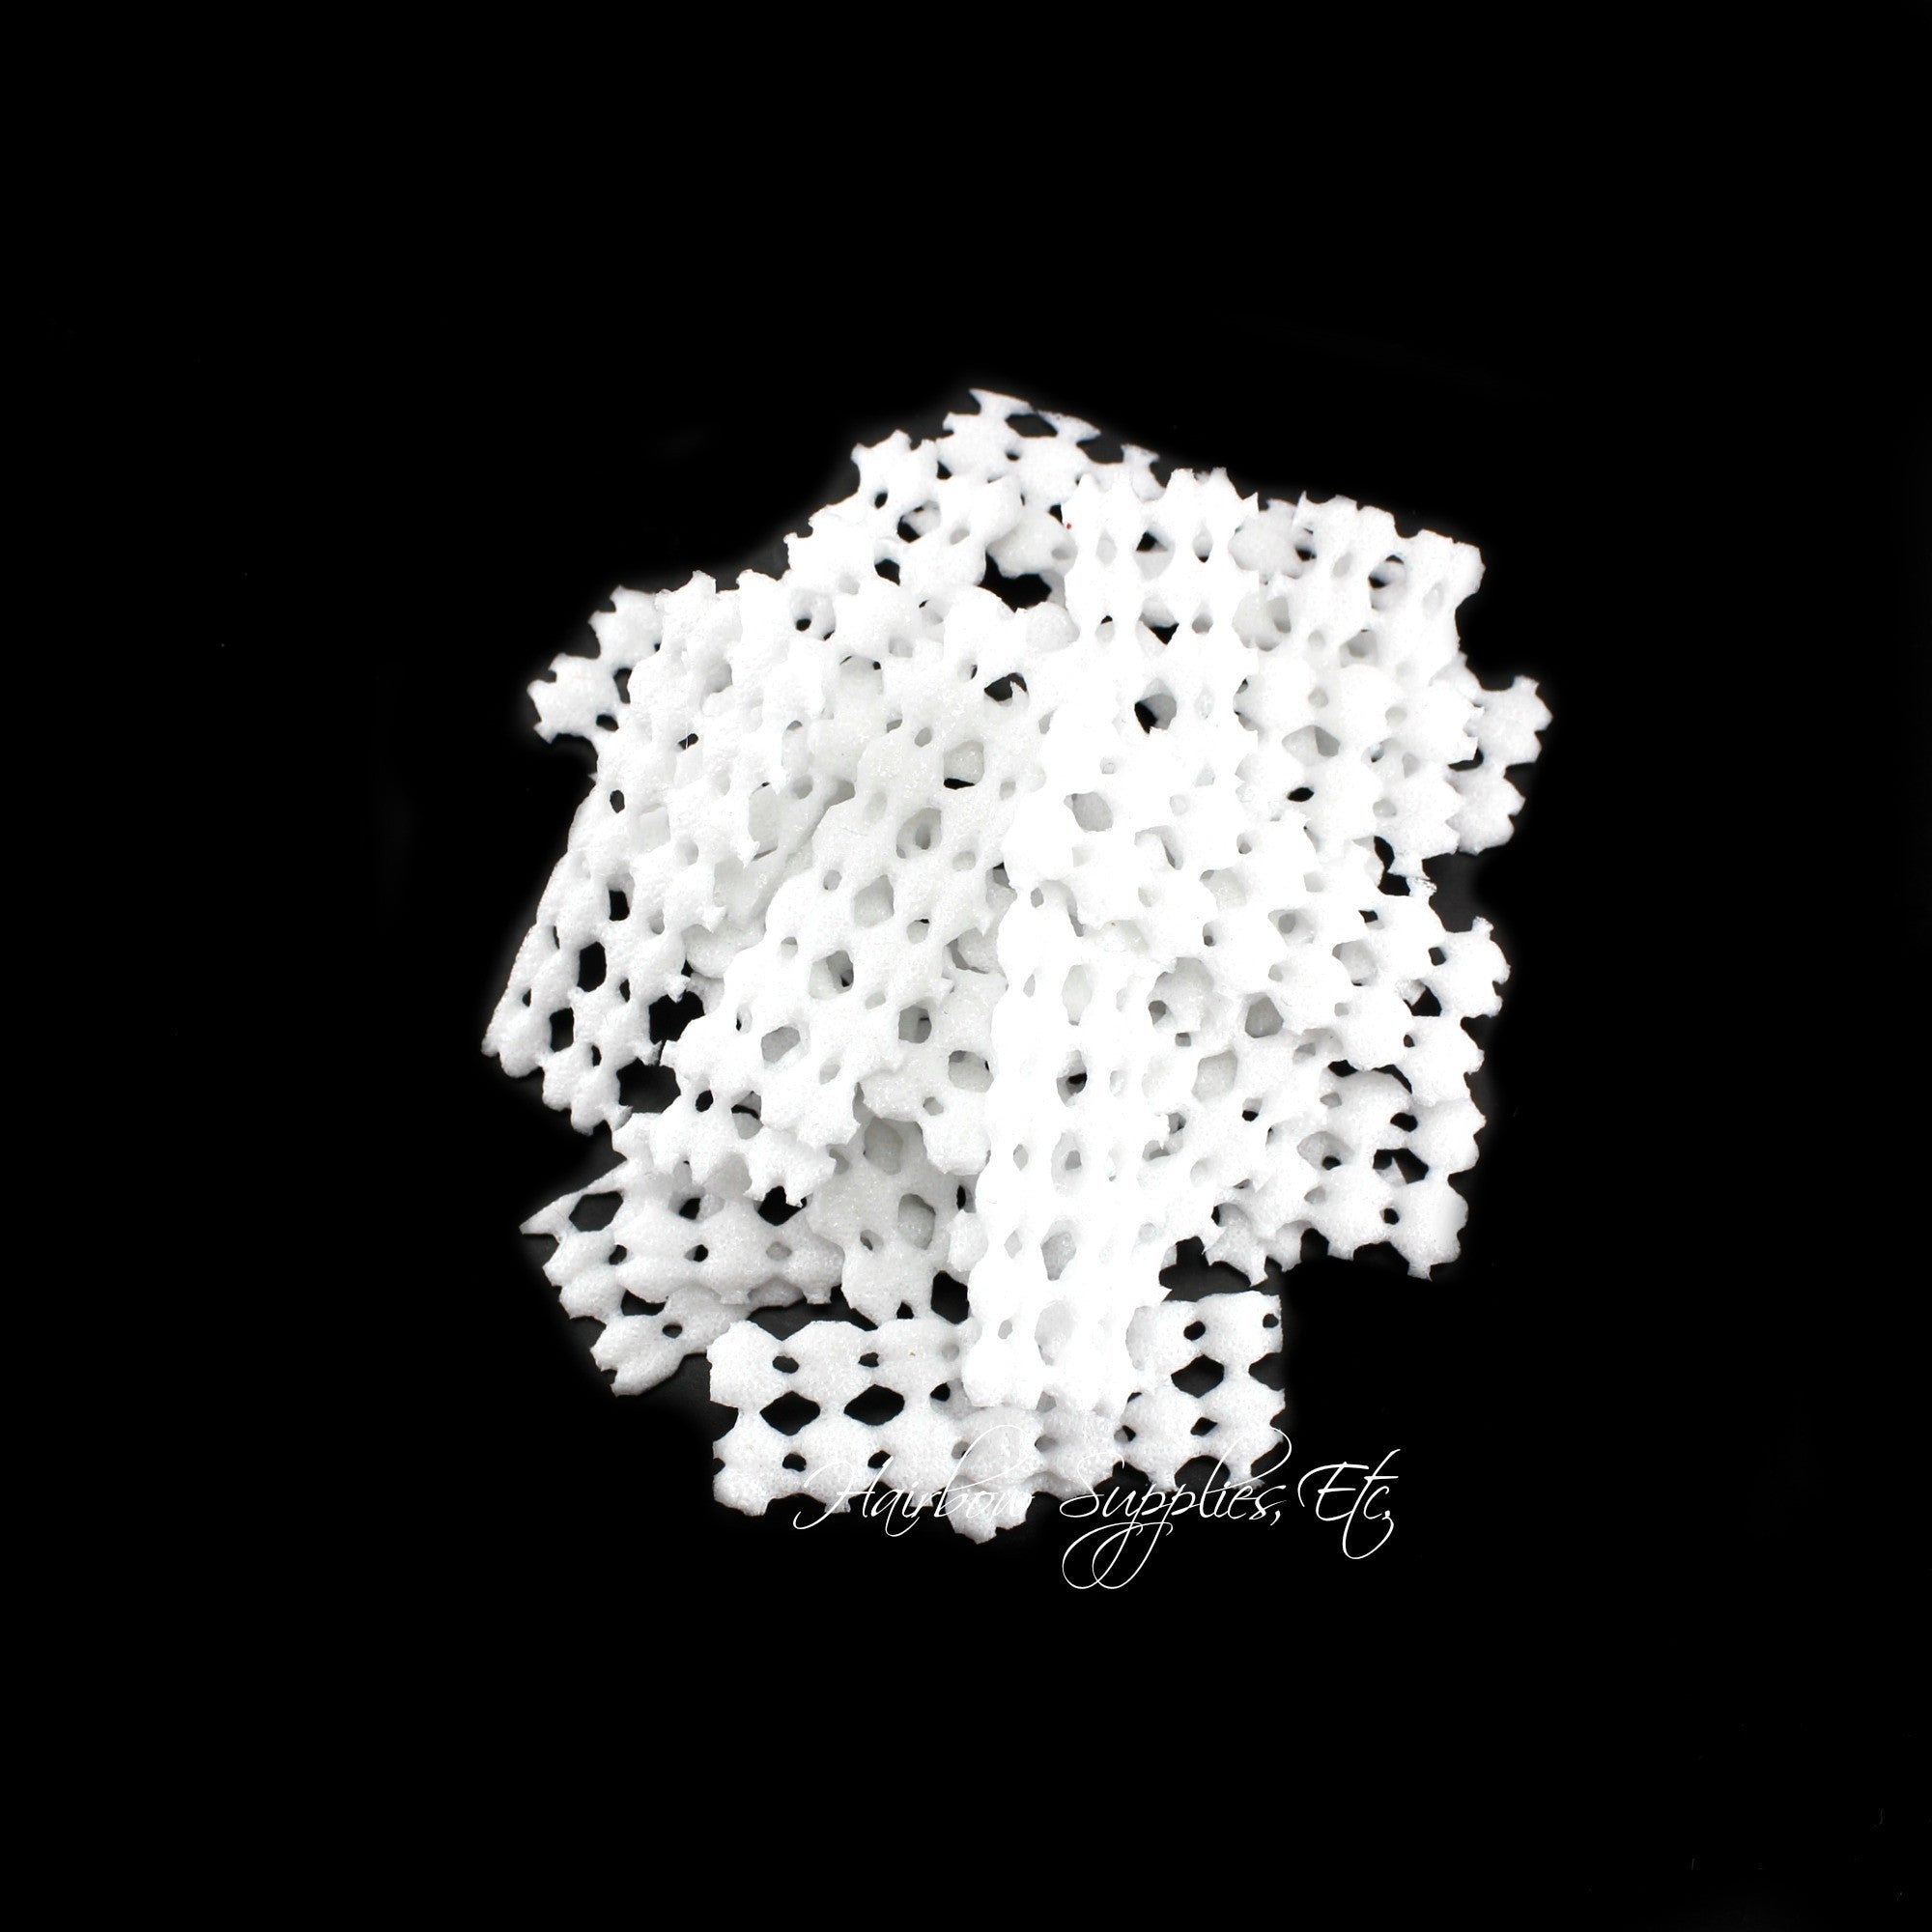 100 white non slip grips liners for alligator clips and hair bows